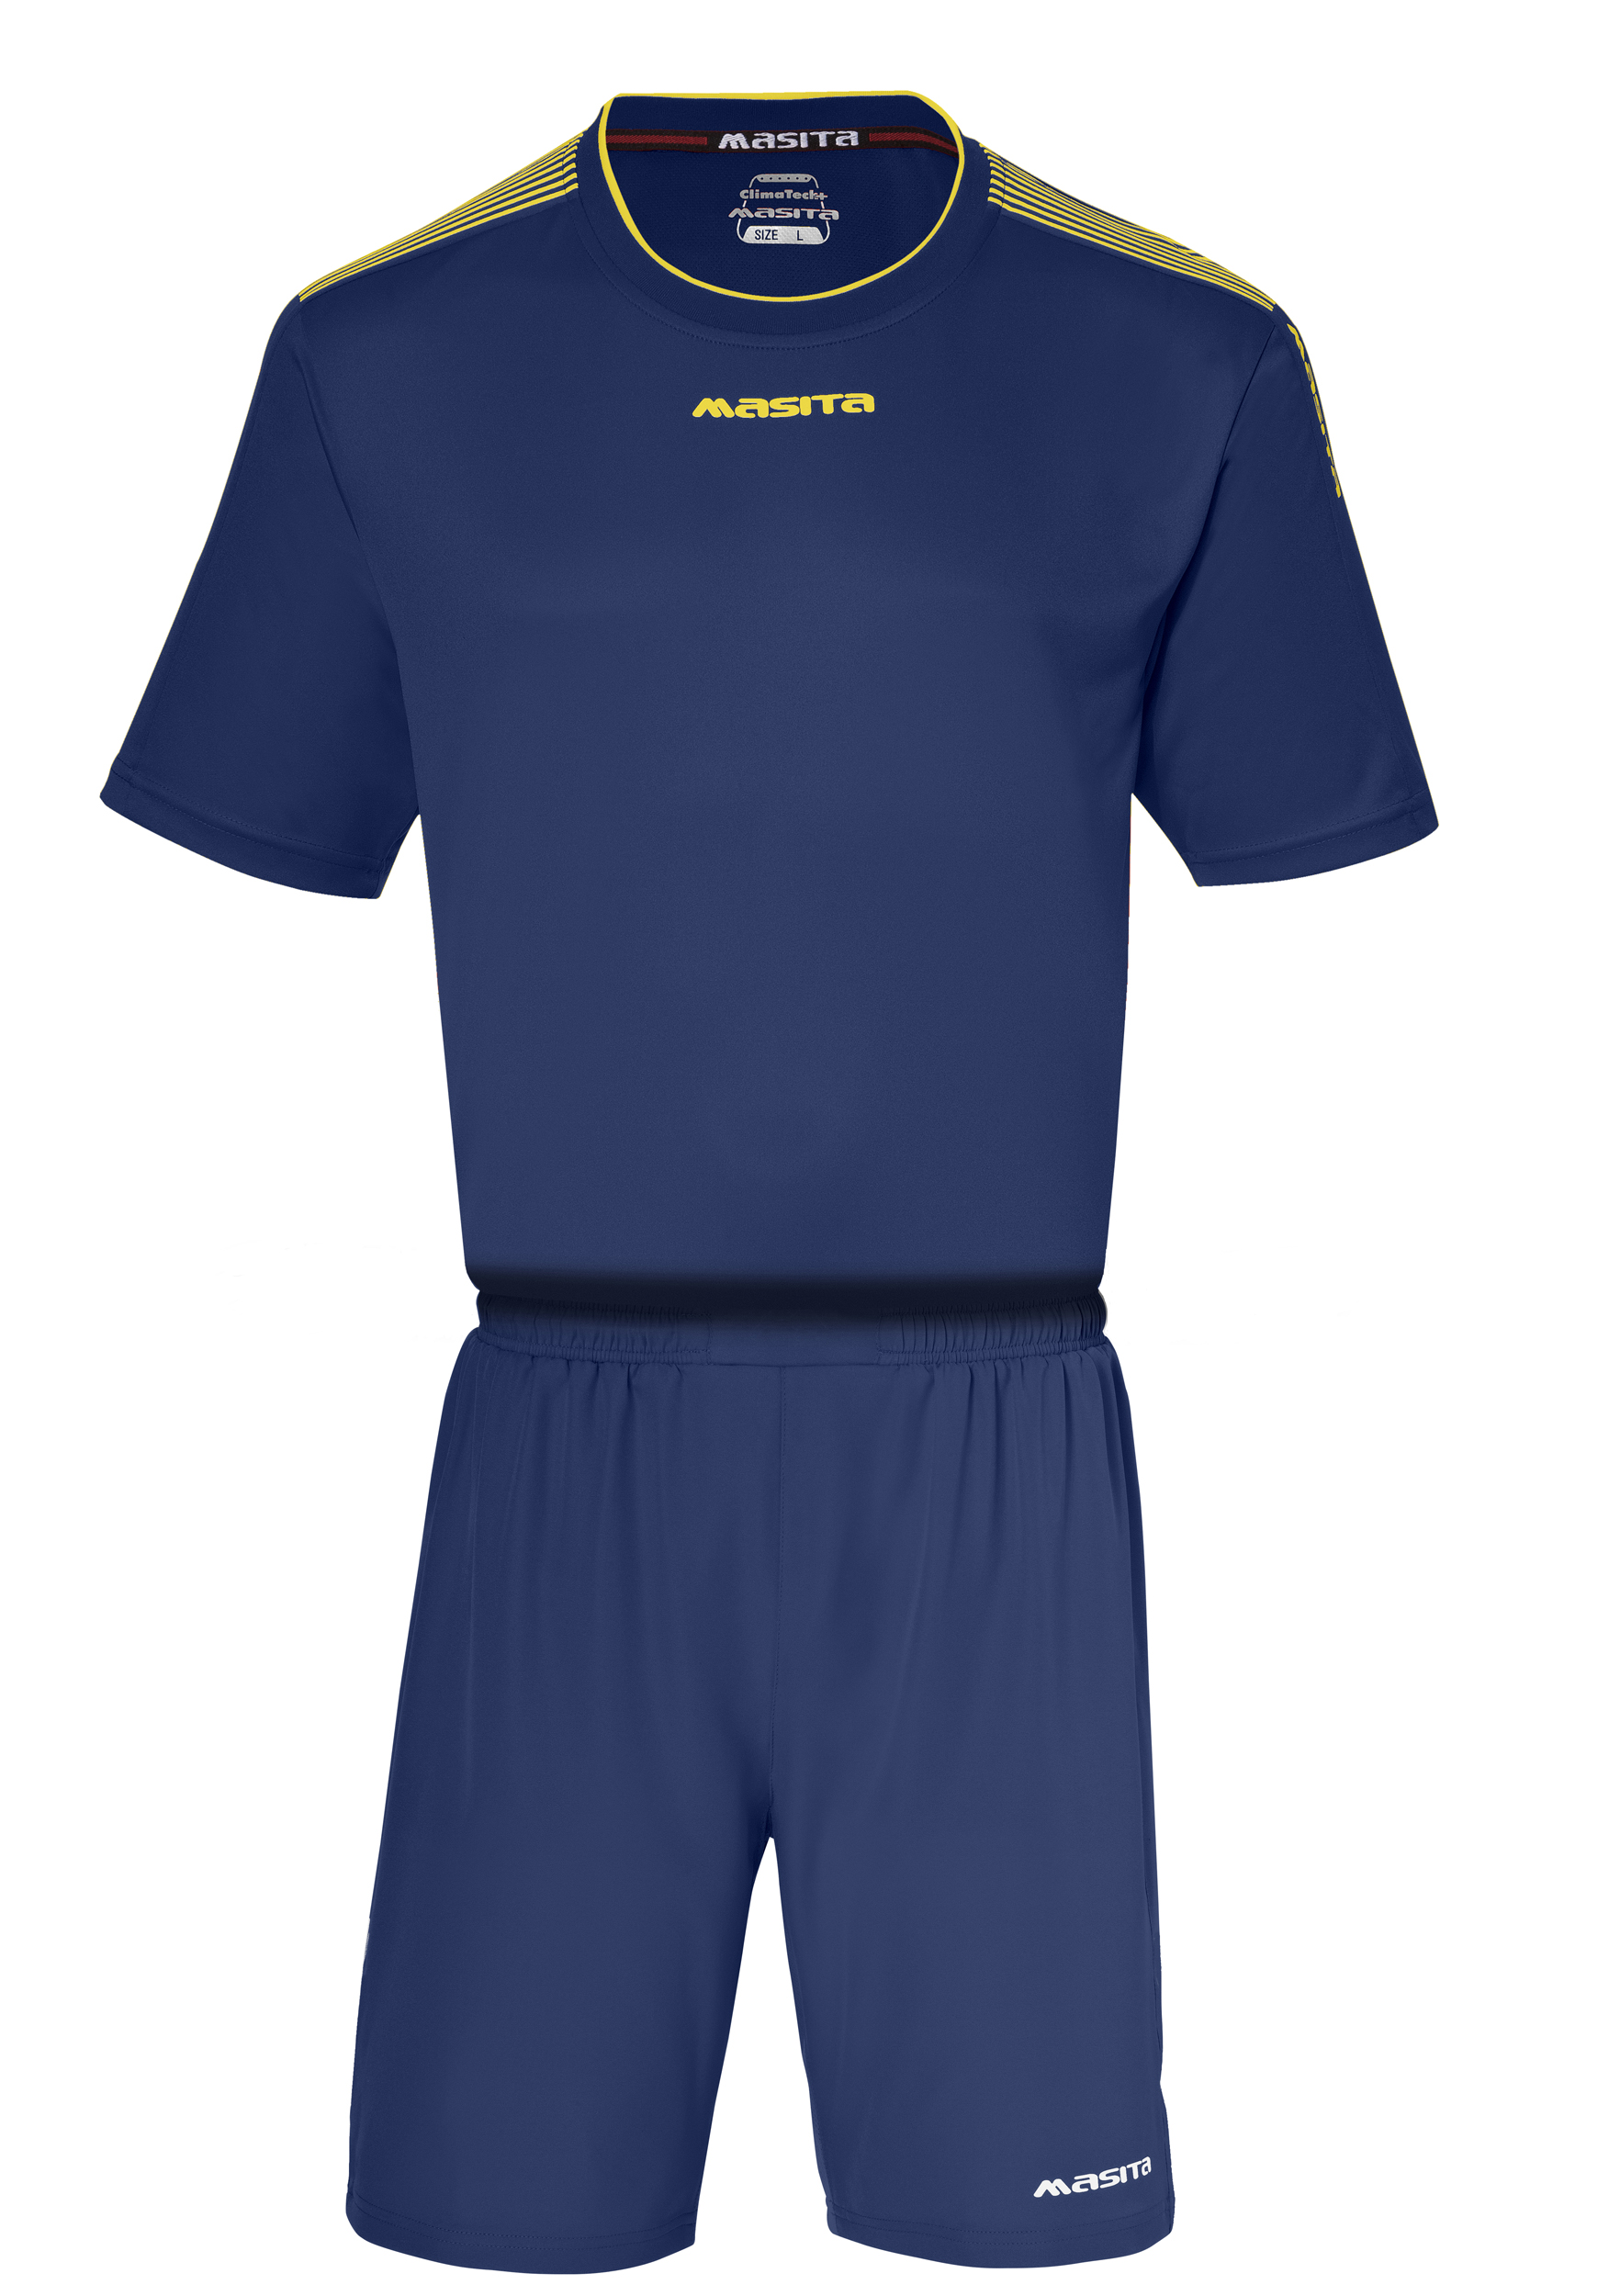 SportShirt Sevilla  Navy Blue / Yellow